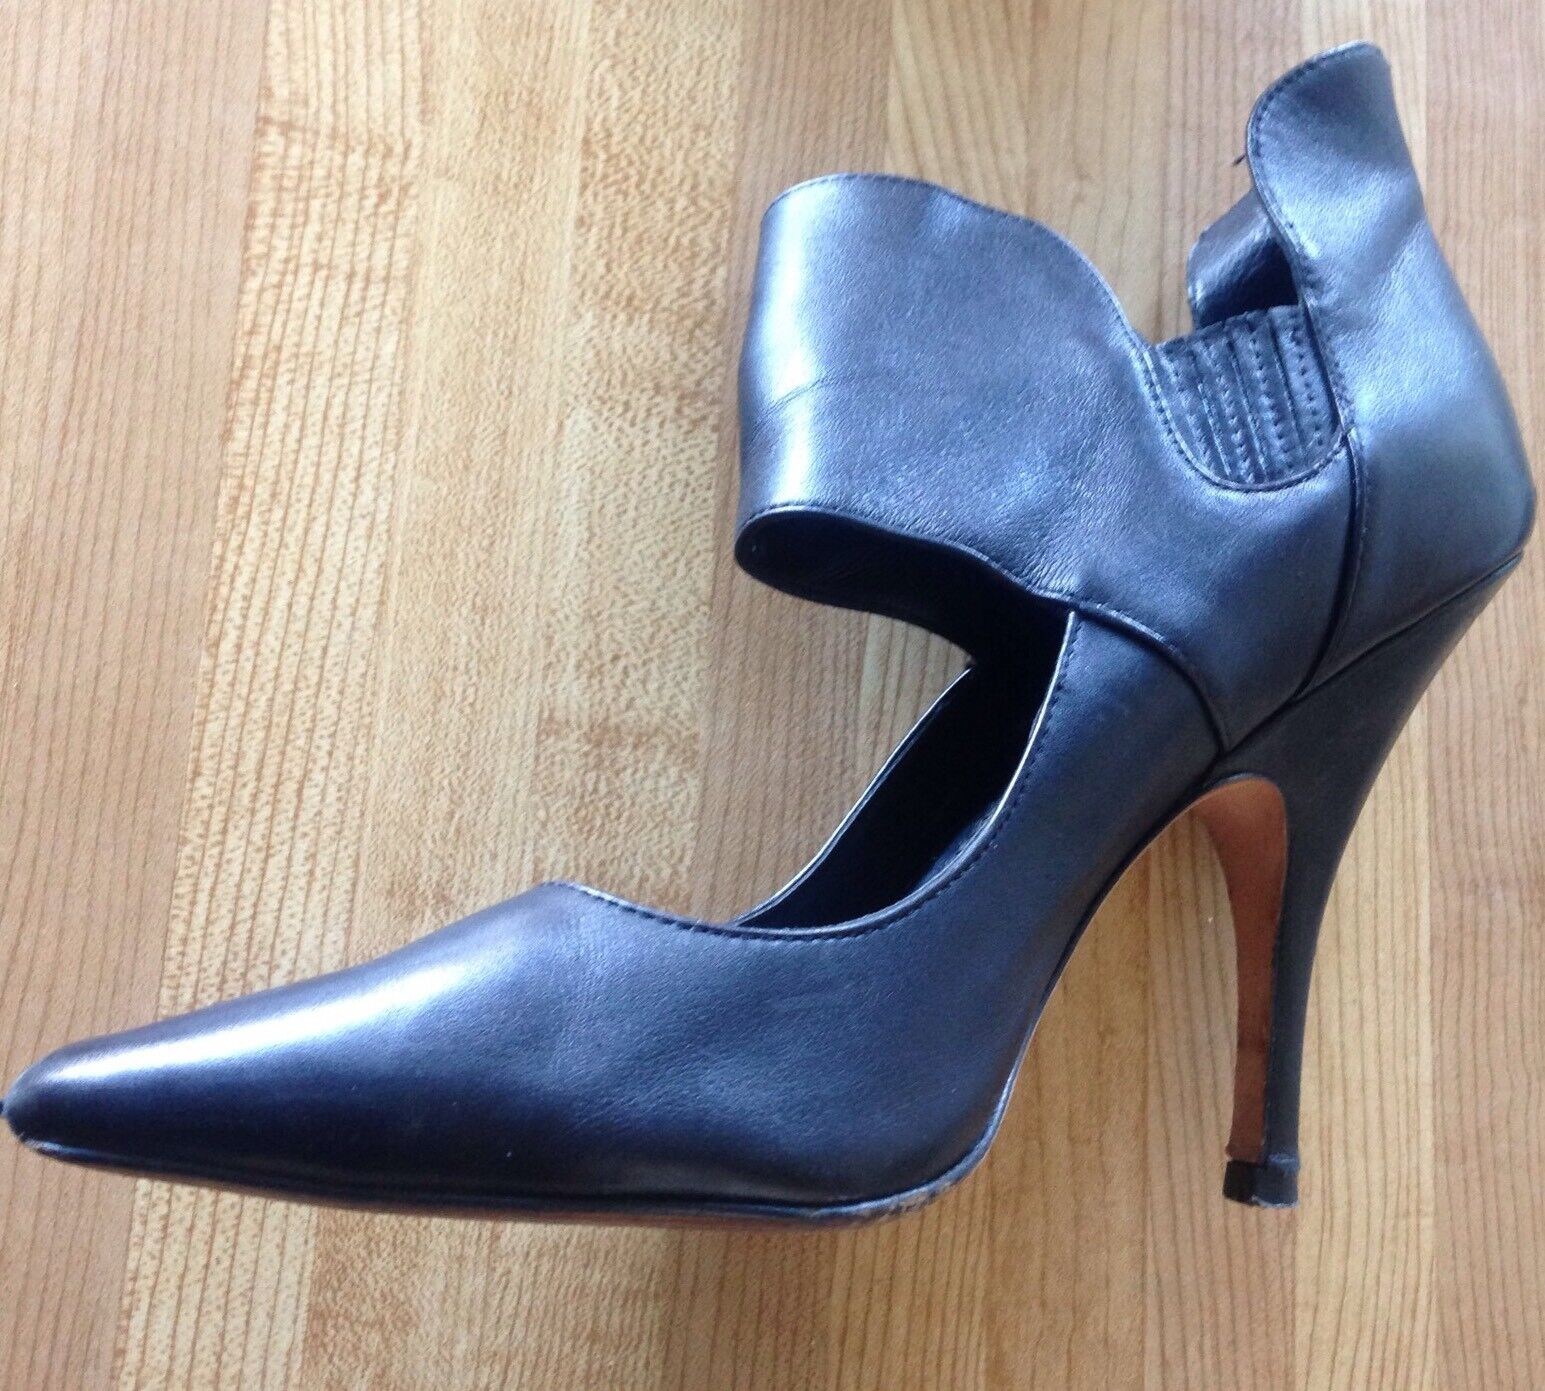 Jean-Michel Cazabat Women's Black Isola Collared Pump Size 39.5